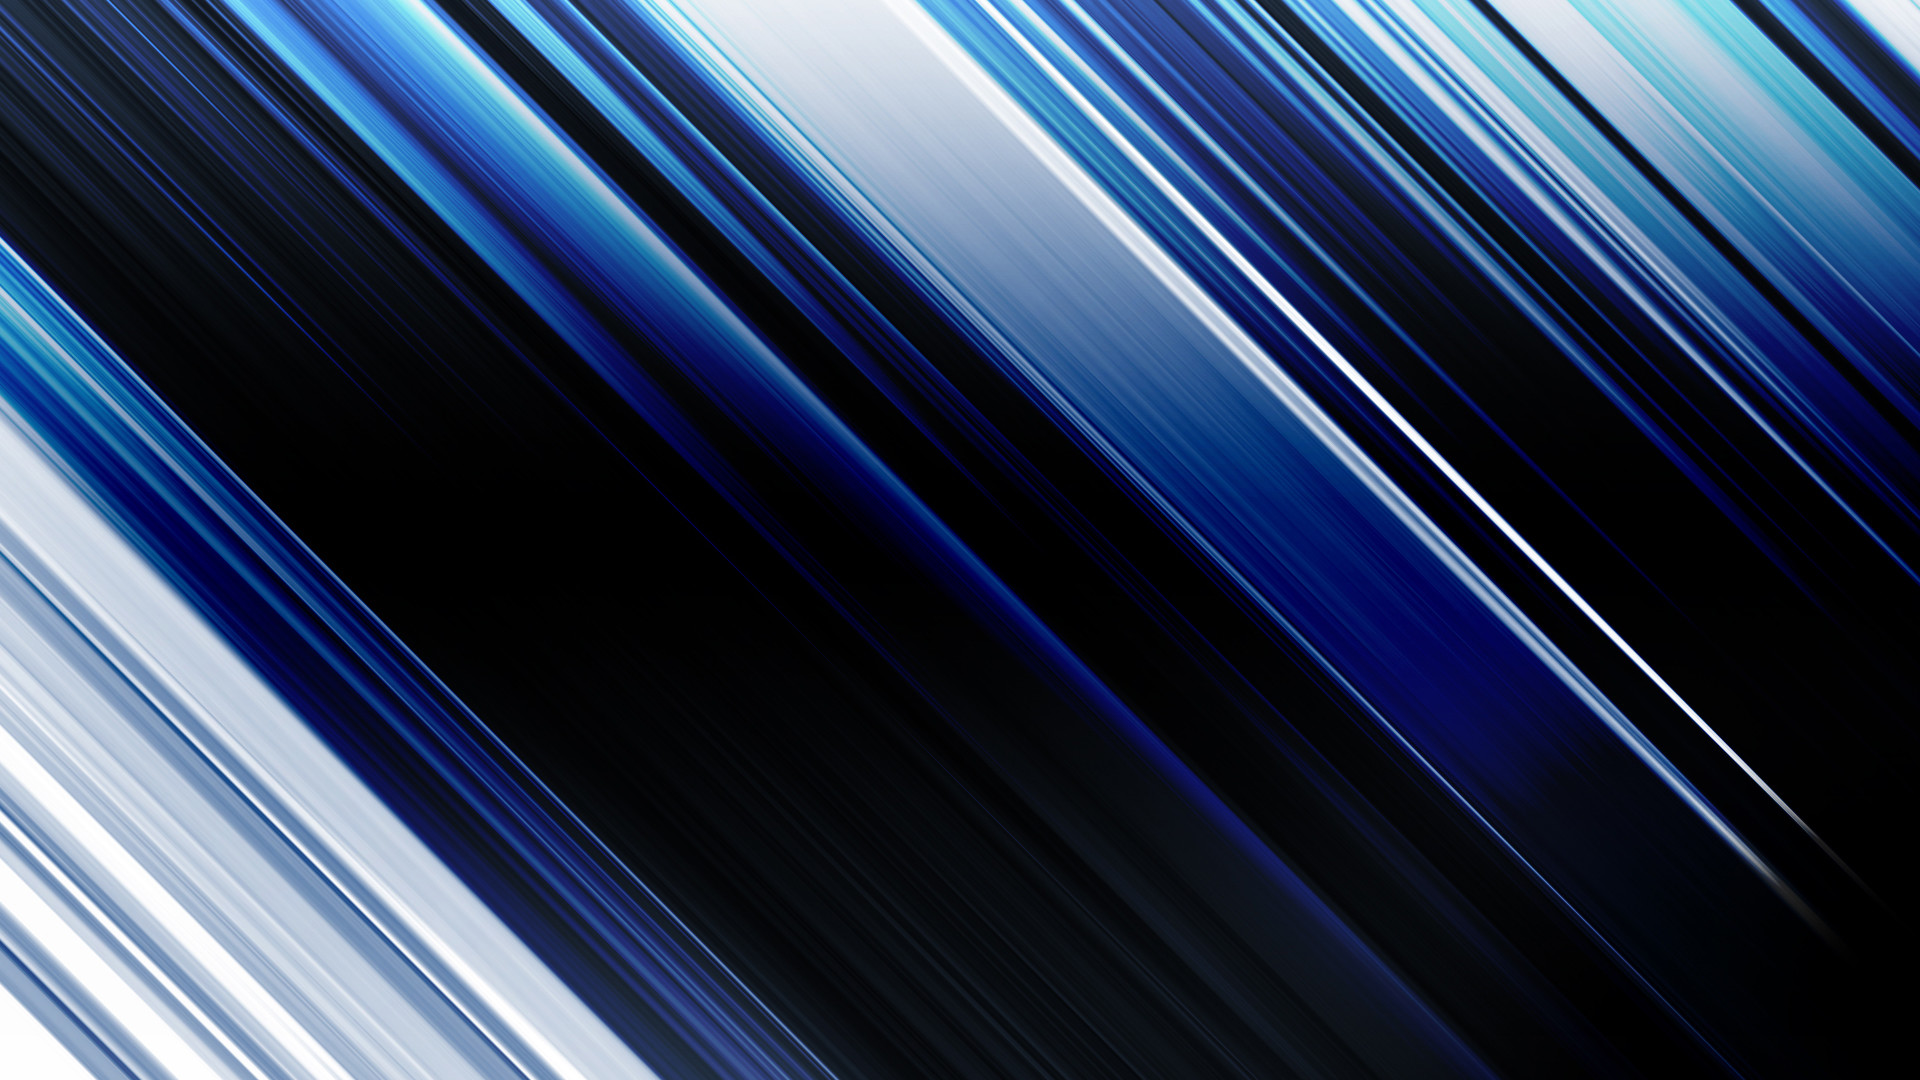 blue abstract wallpaper for pc (56+ images)